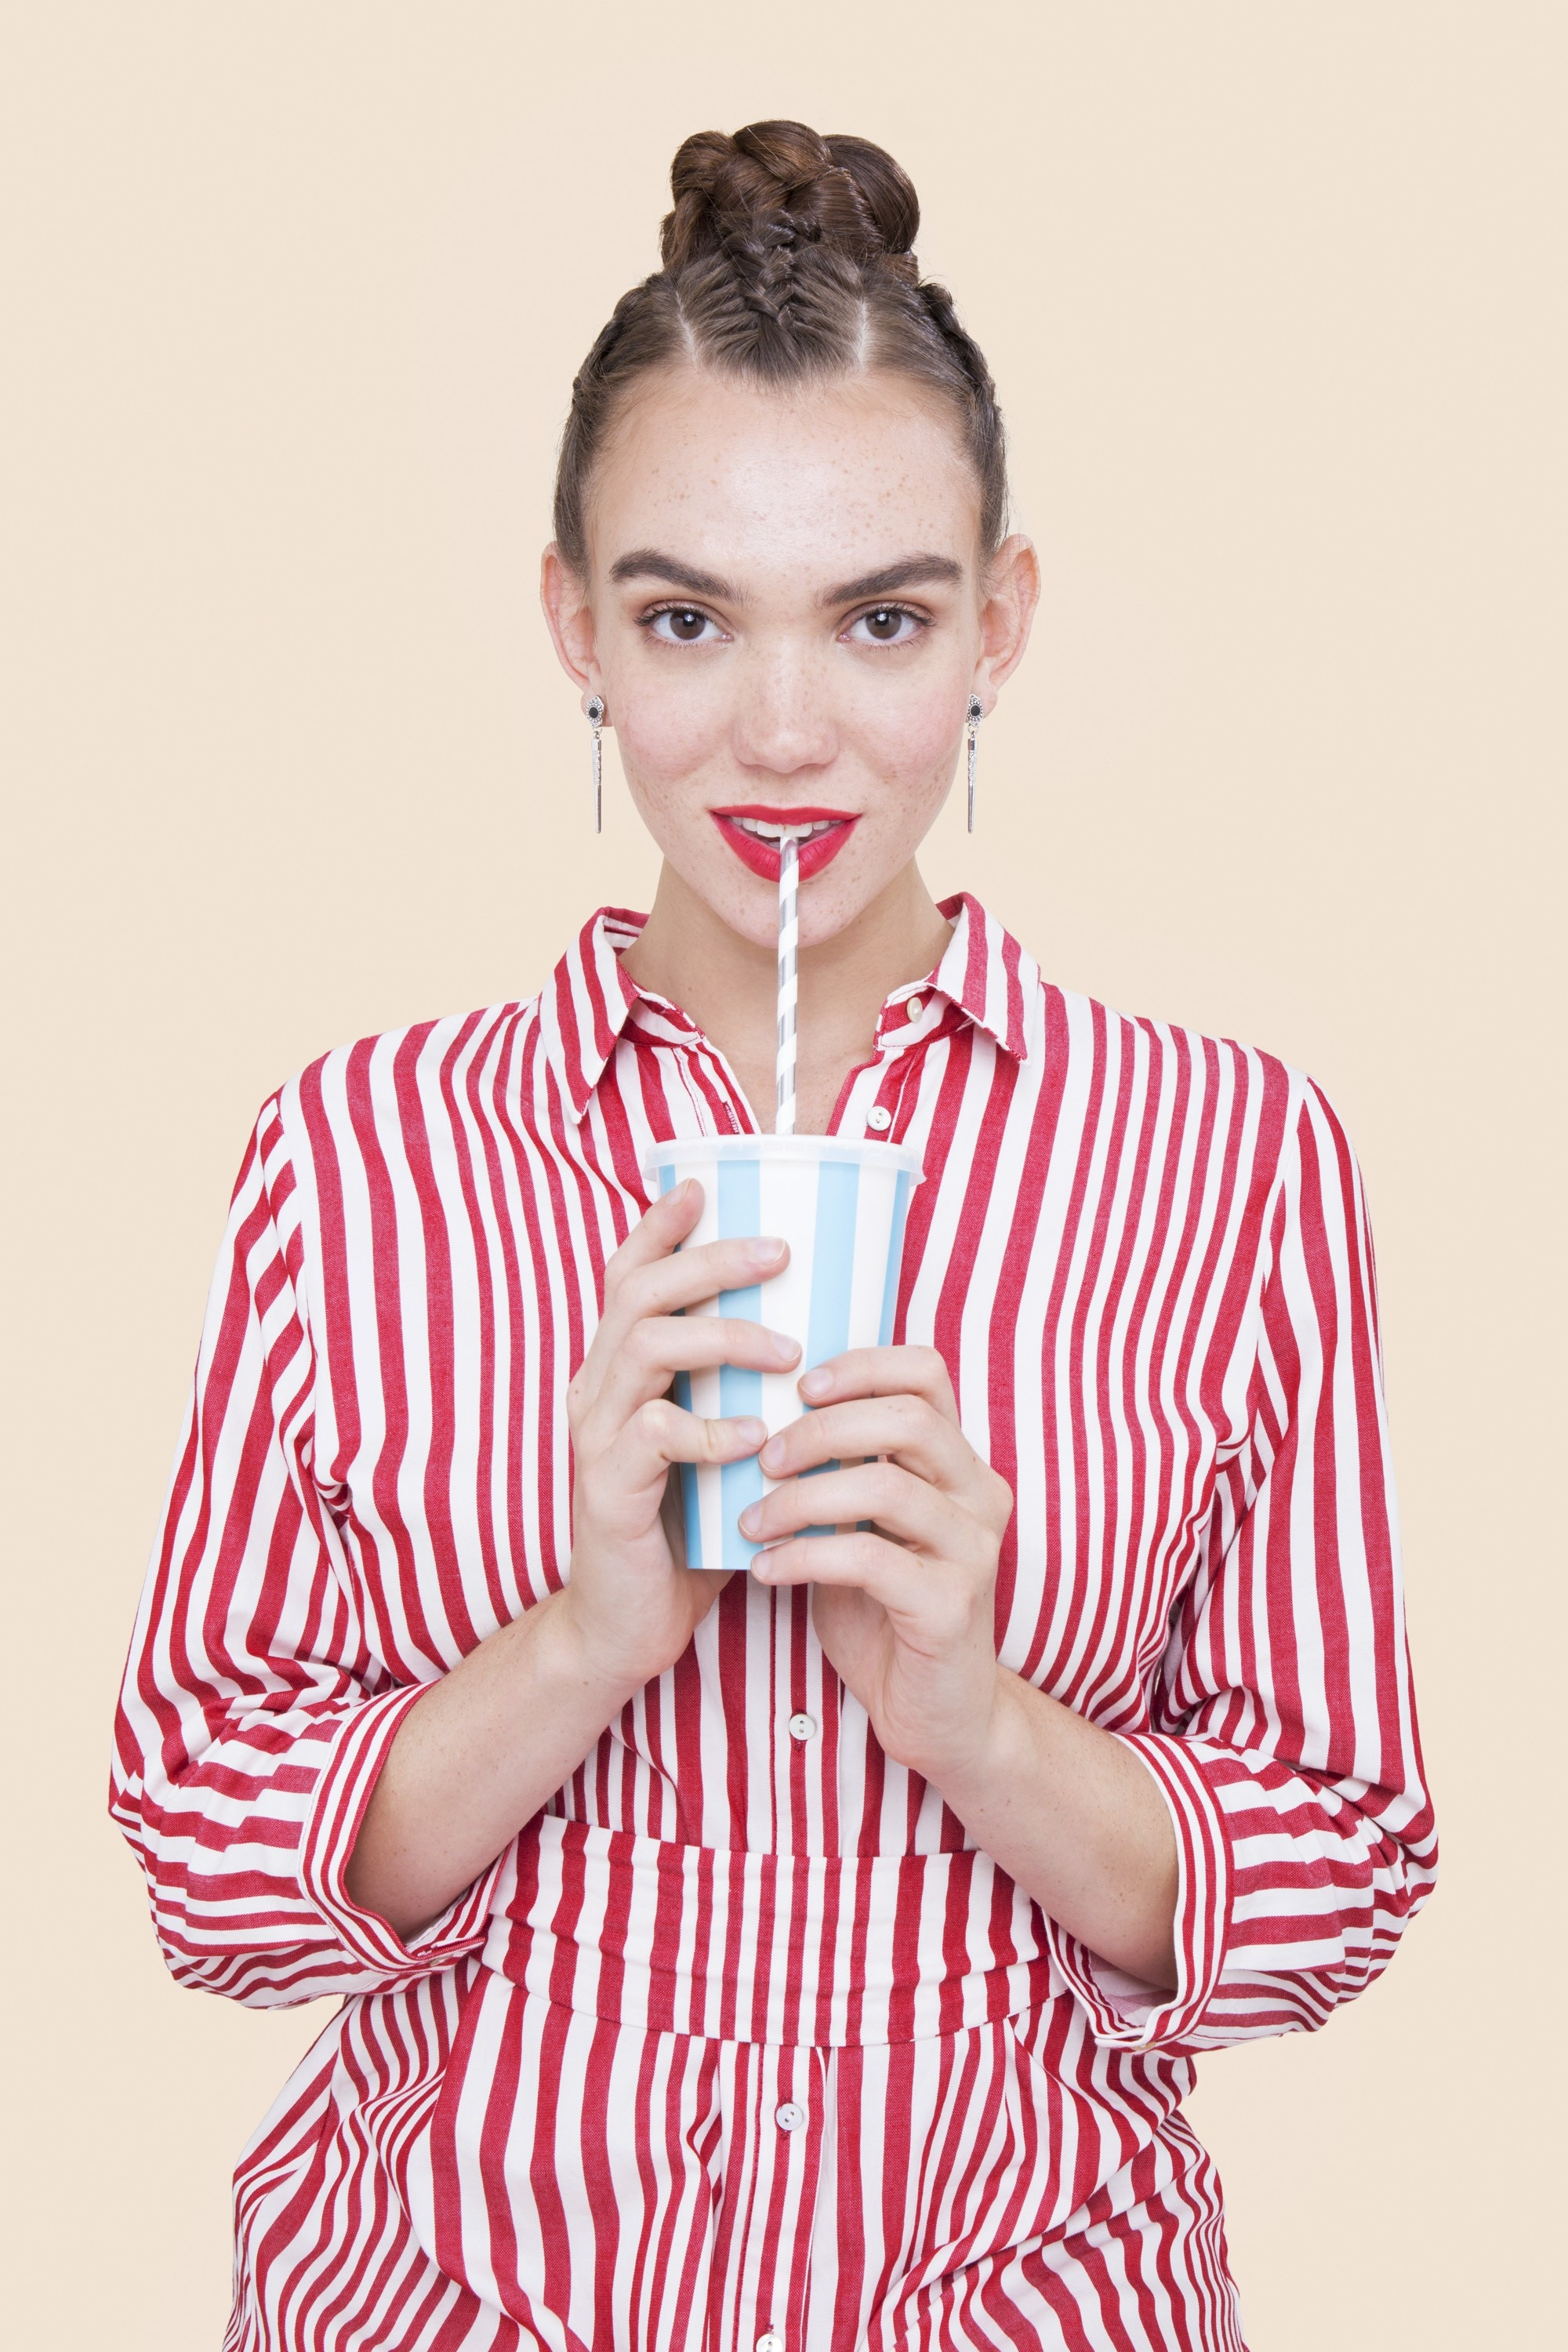 close up shot of model with red striped shirt and braided bun hairstyle